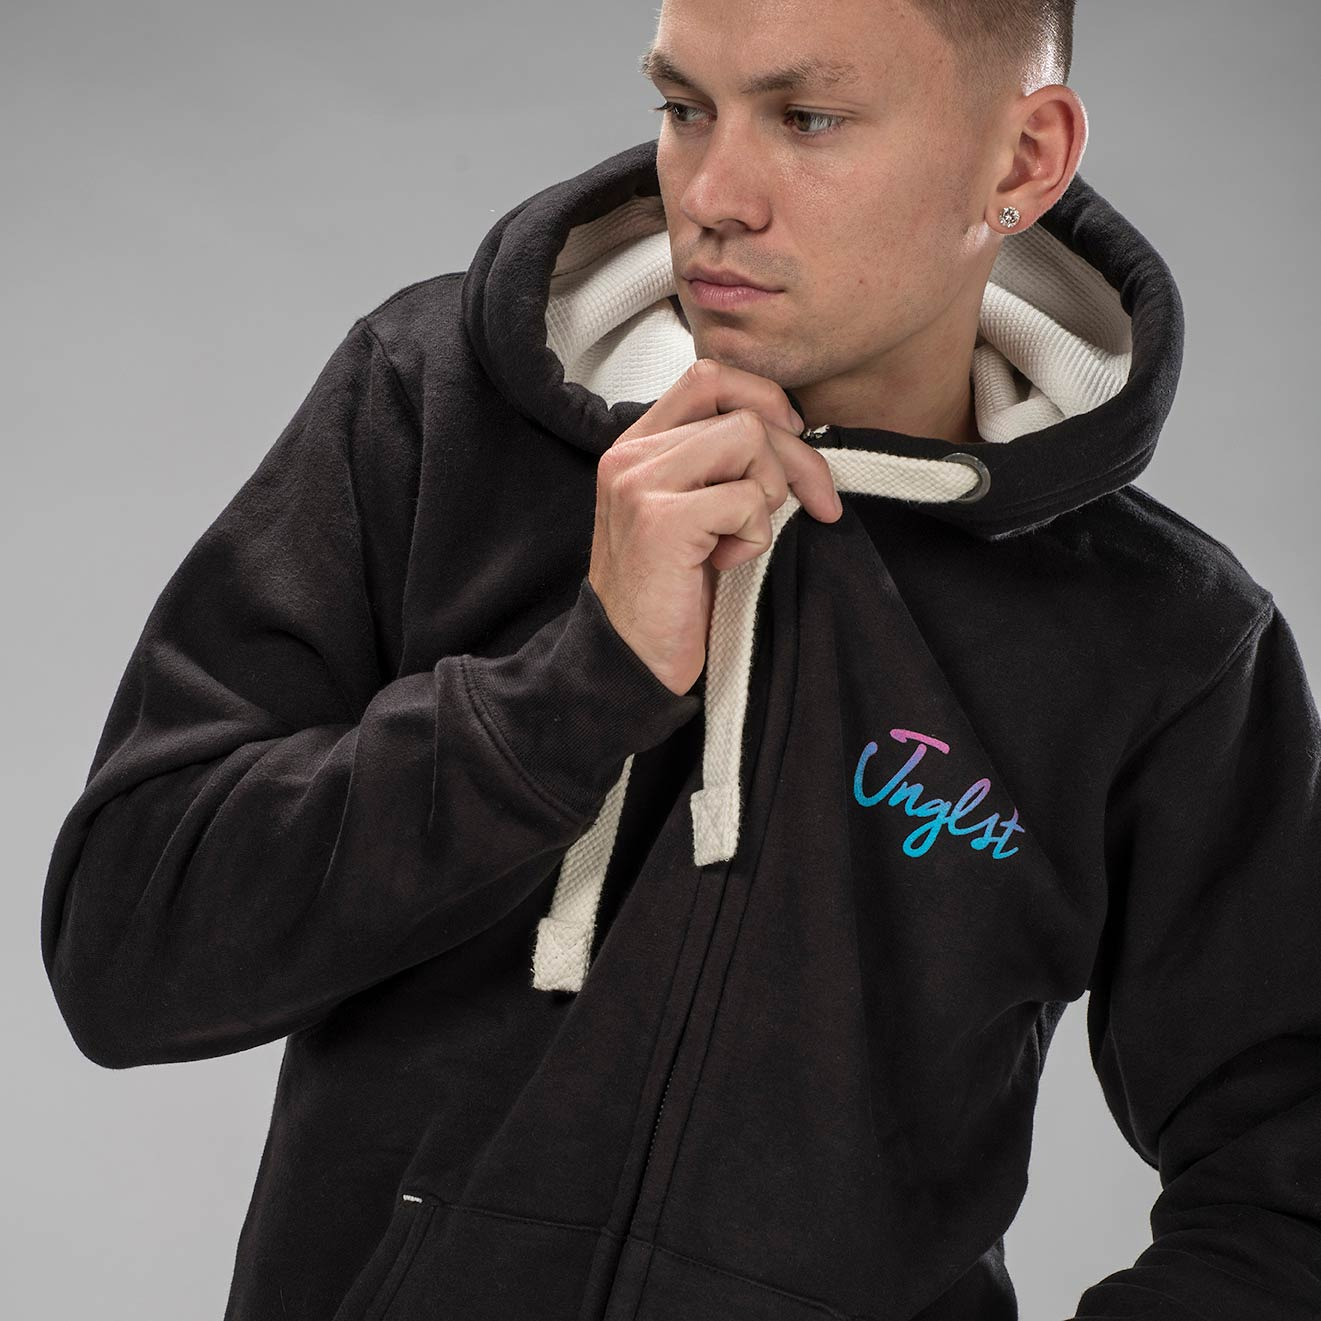 Fader Hoodie from Jnglst Clothing